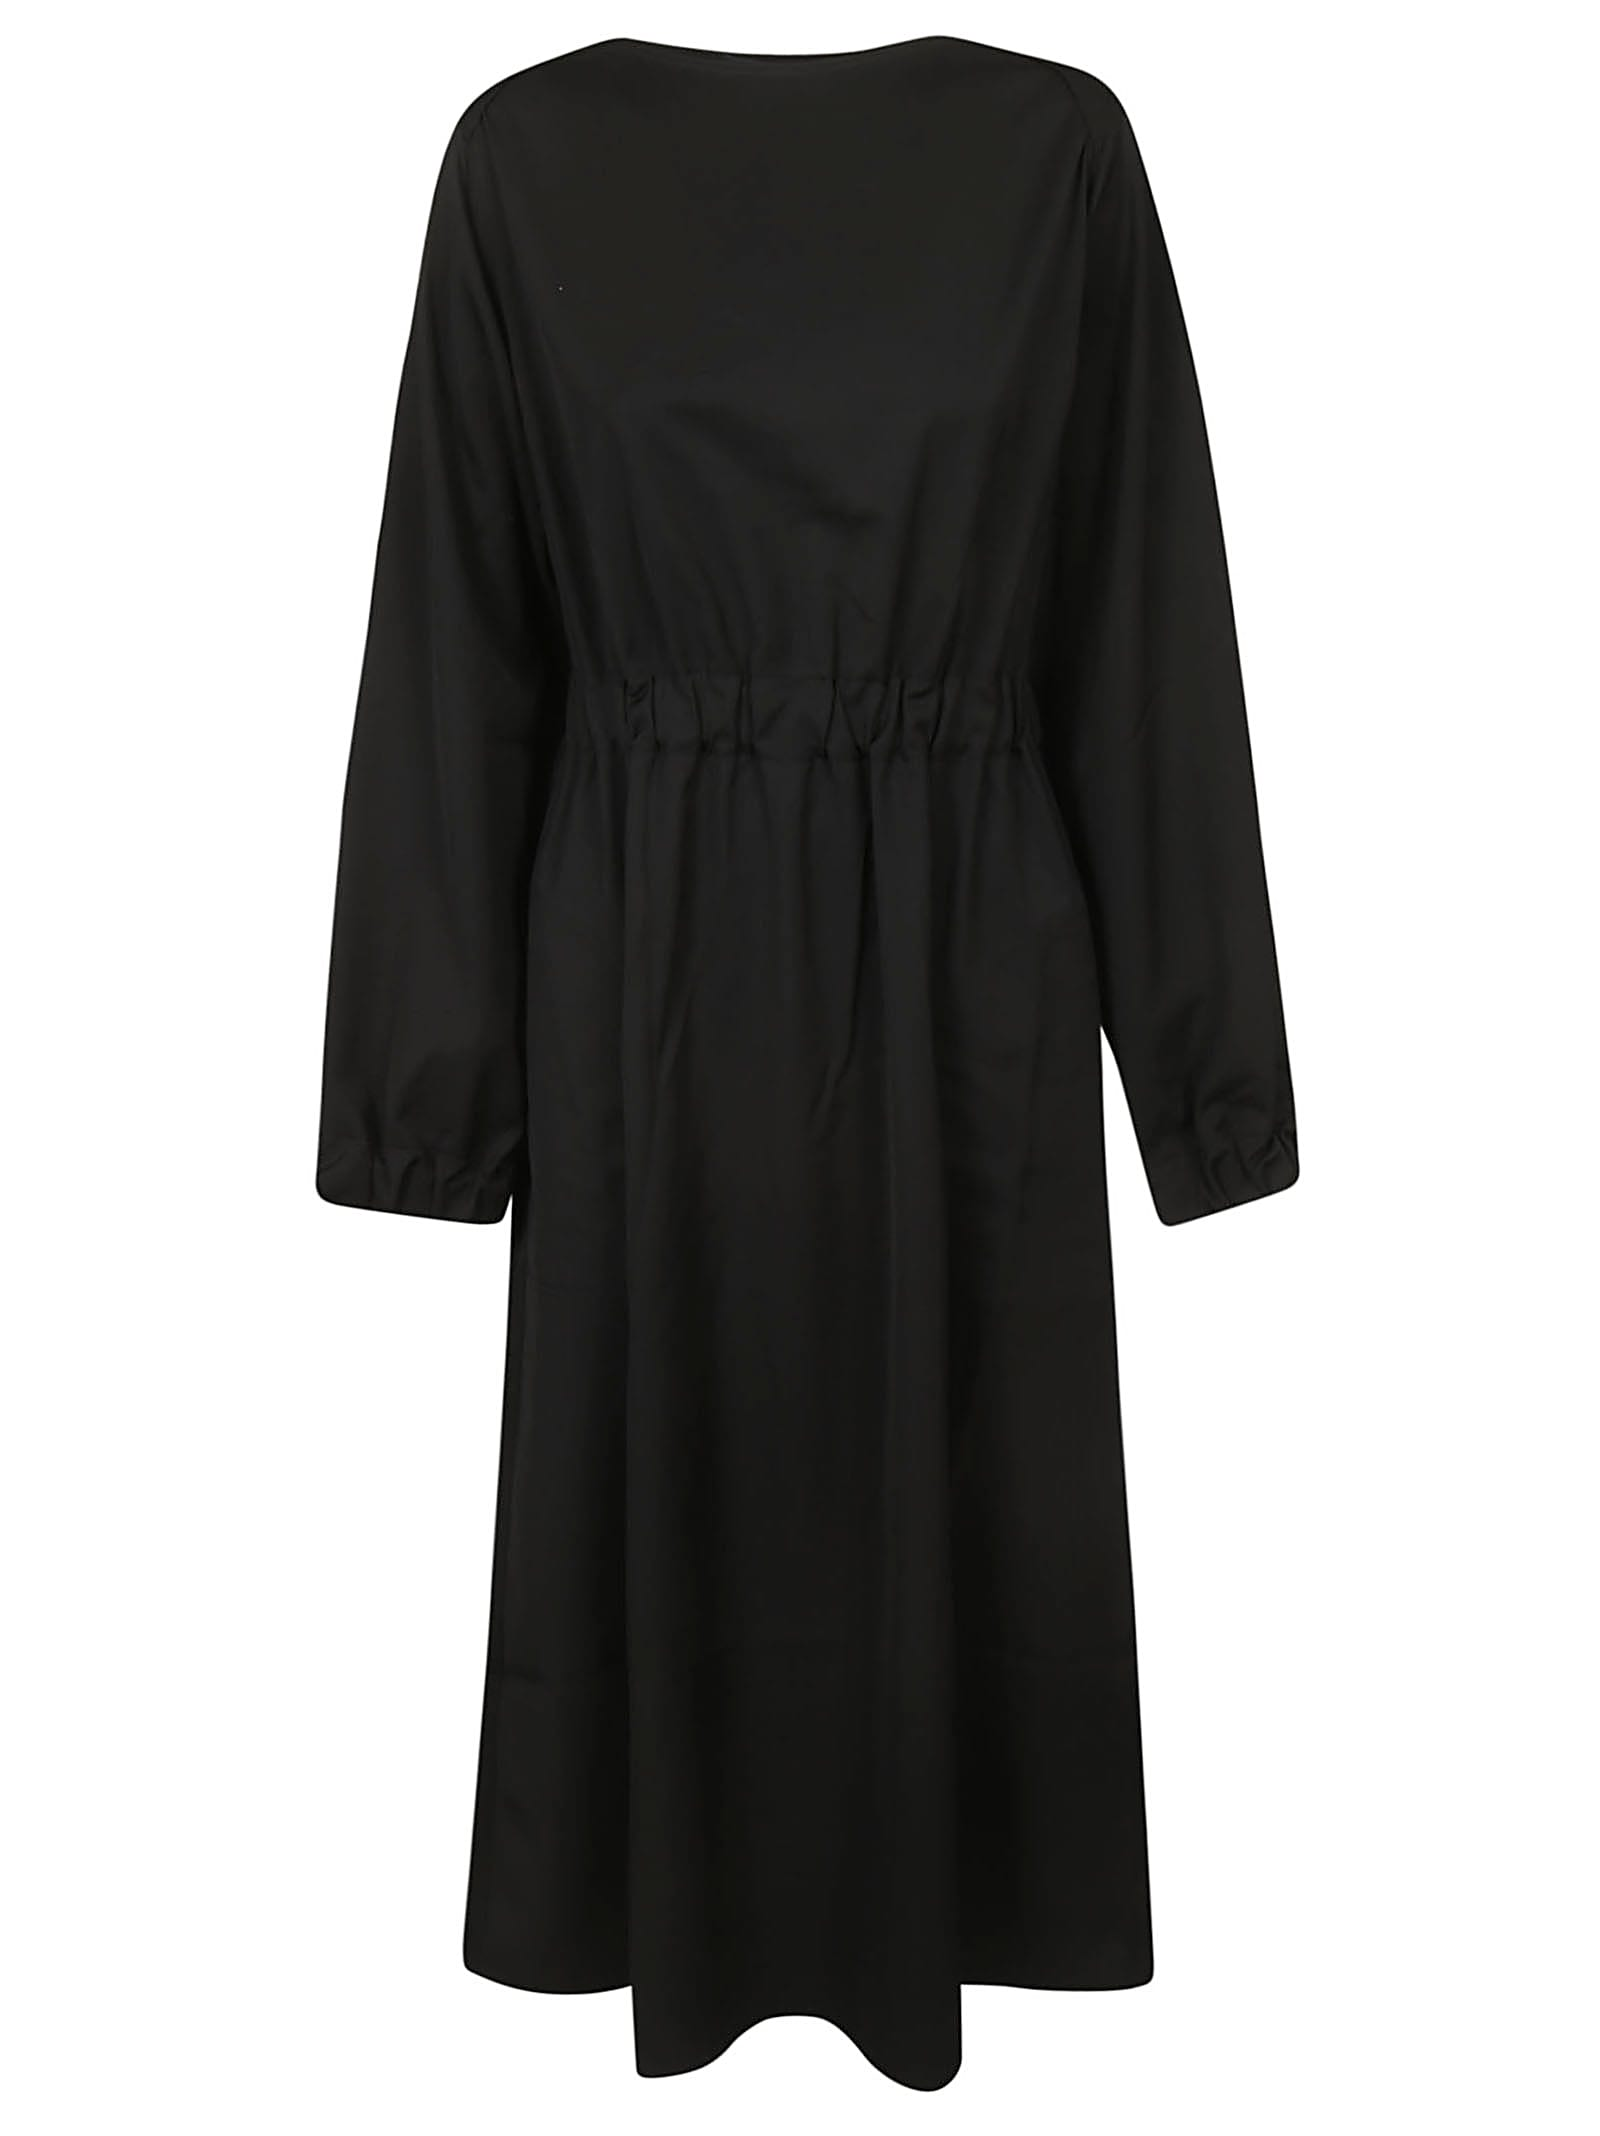 Sofie dHoore Midi Dress